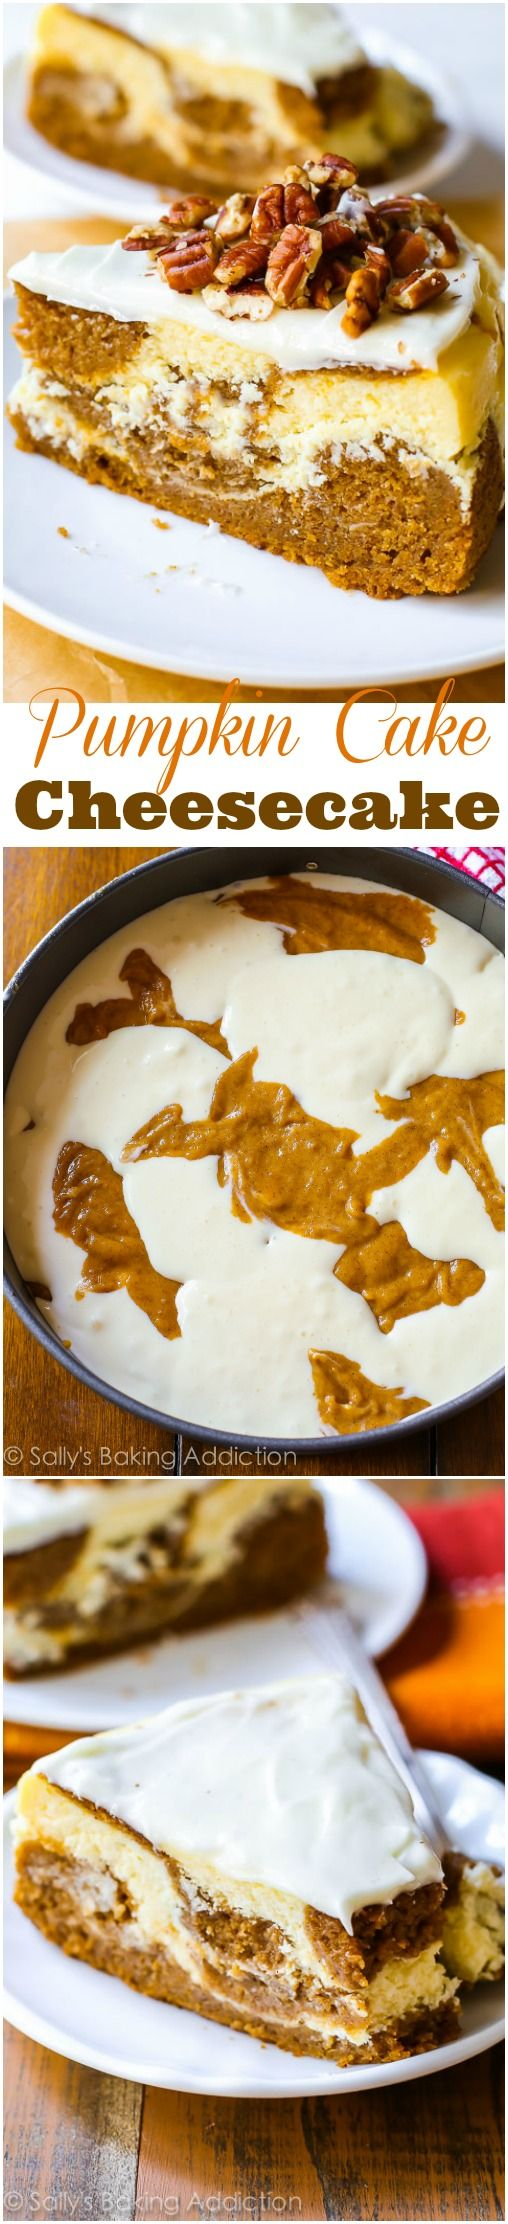 Simply divine pumpkin cake swirled with rich and creamy cheesecake. This is something every pumpkin lover should try this fall!